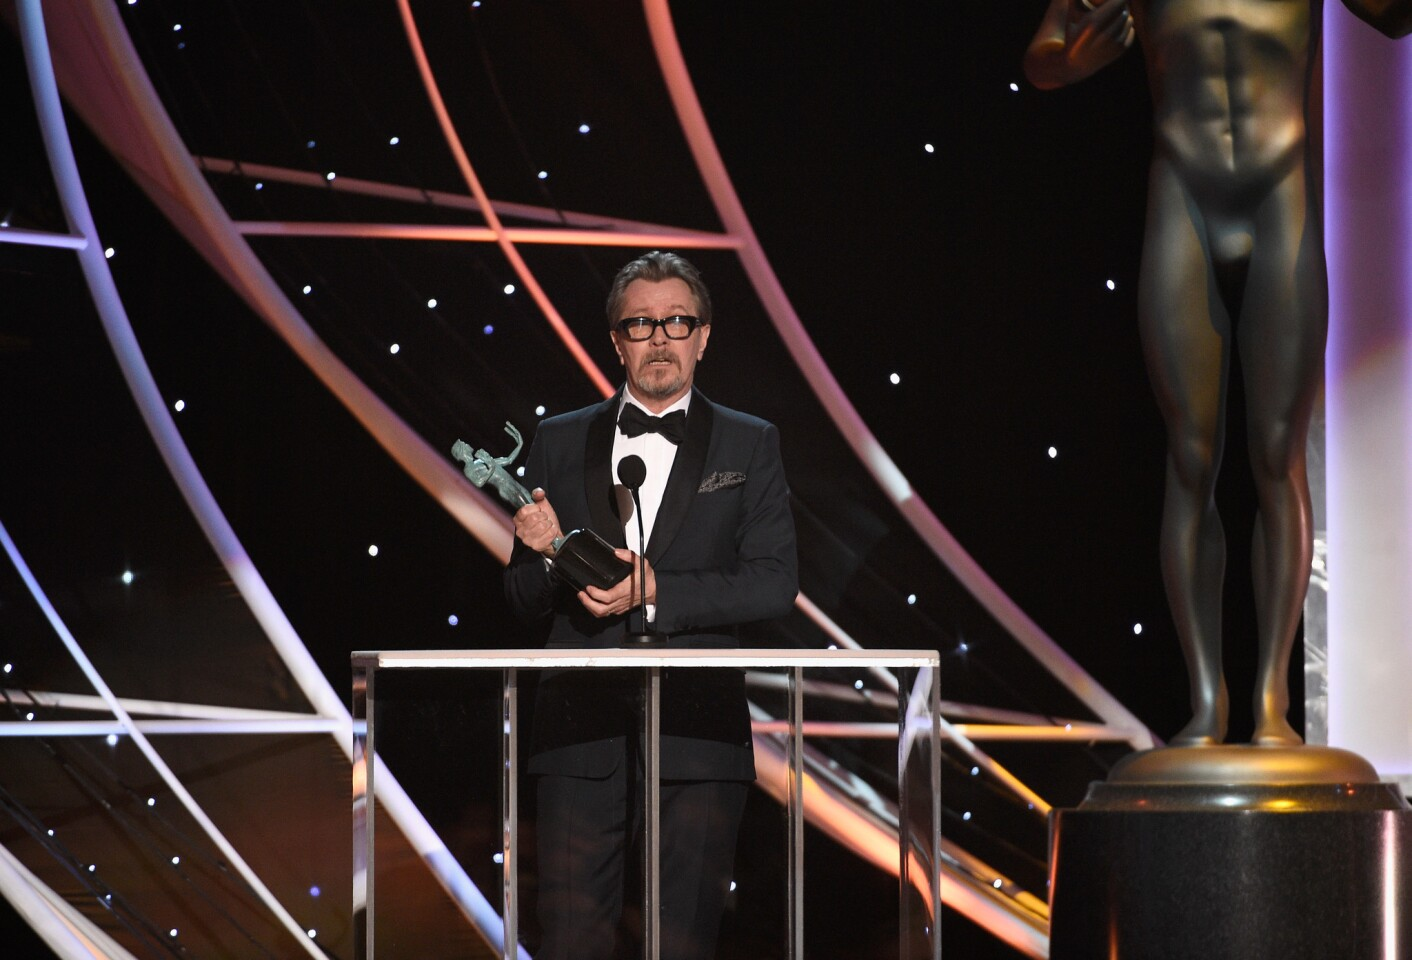 LOS ANGELES, CA - JANUARY 21: Actor Gary Oldman onstage during the 24th Annual Screen Actors Guild Awards at The Shrine Auditorium on January 21, 2018 in Los Angeles, California. (Photo by Kevork Djansezian/Getty Images) ** OUTS - ELSENT, FPG, CM - OUTS * NM, PH, VA if sourced by CT, LA or MoD **